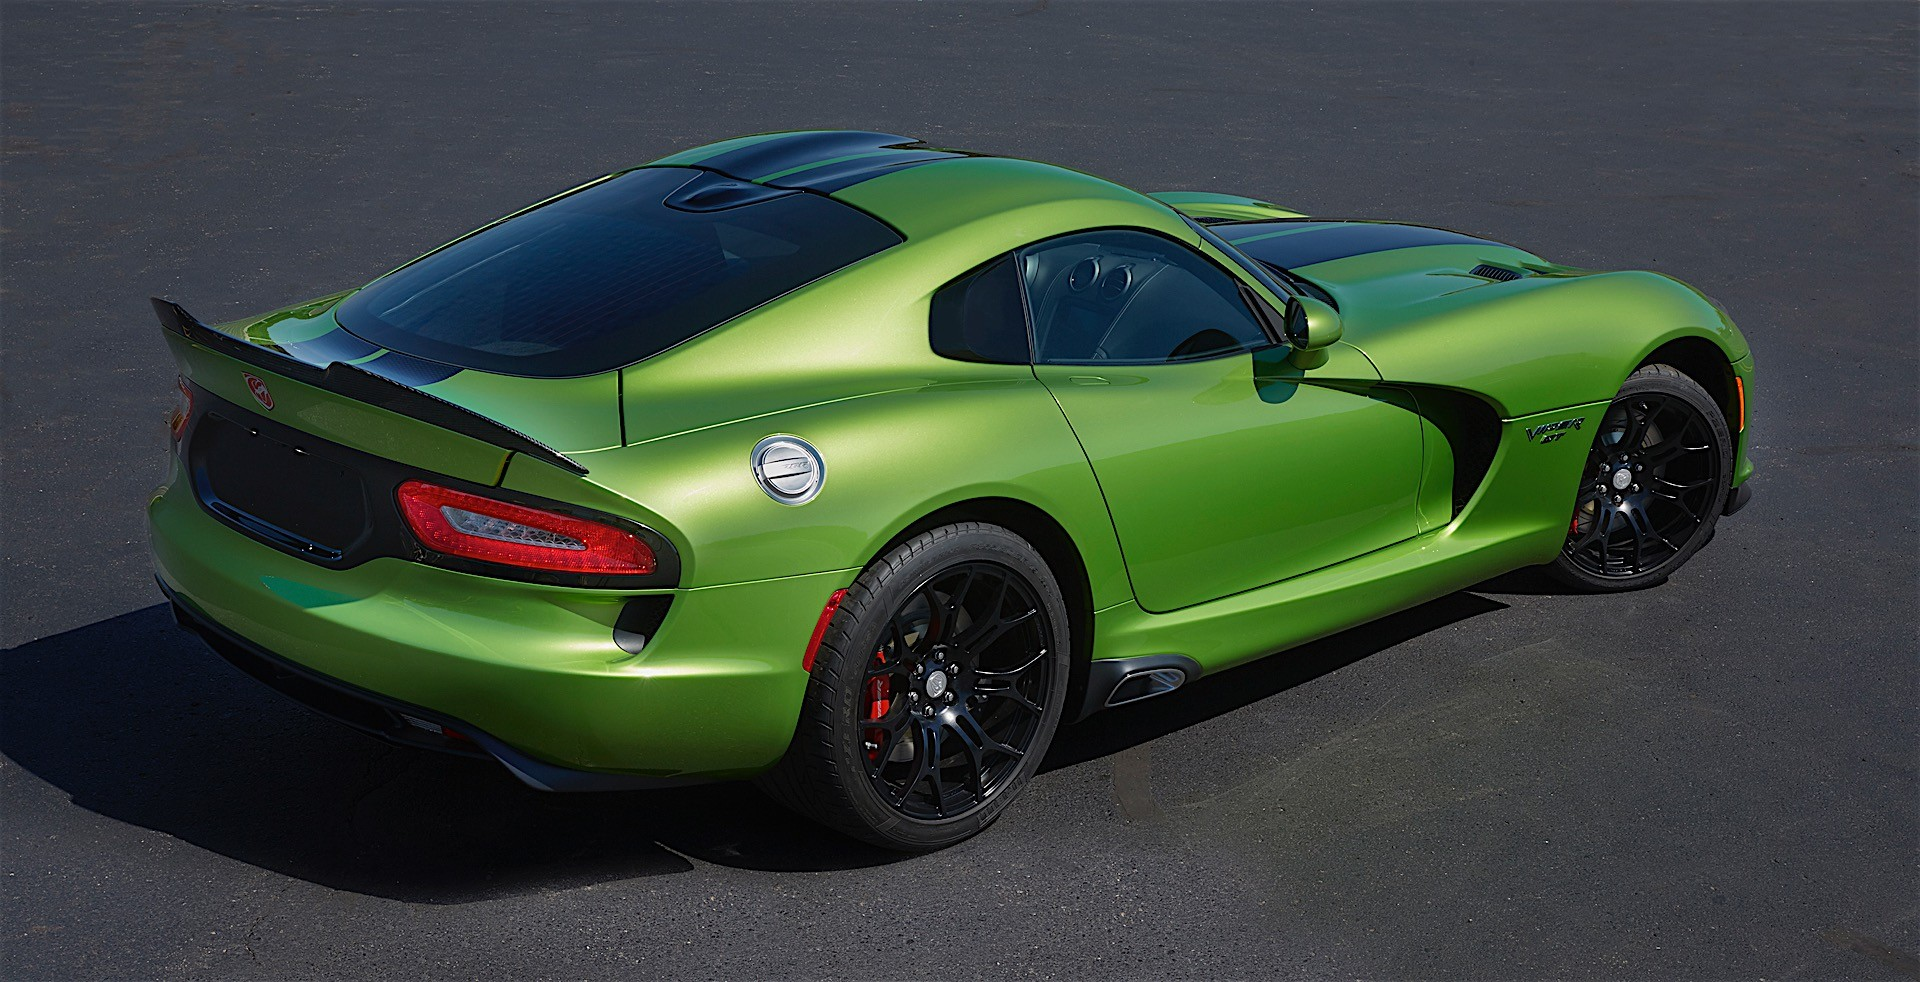 2017 Dodge Viper Priced The Same As 2016 Model, Starts At ...